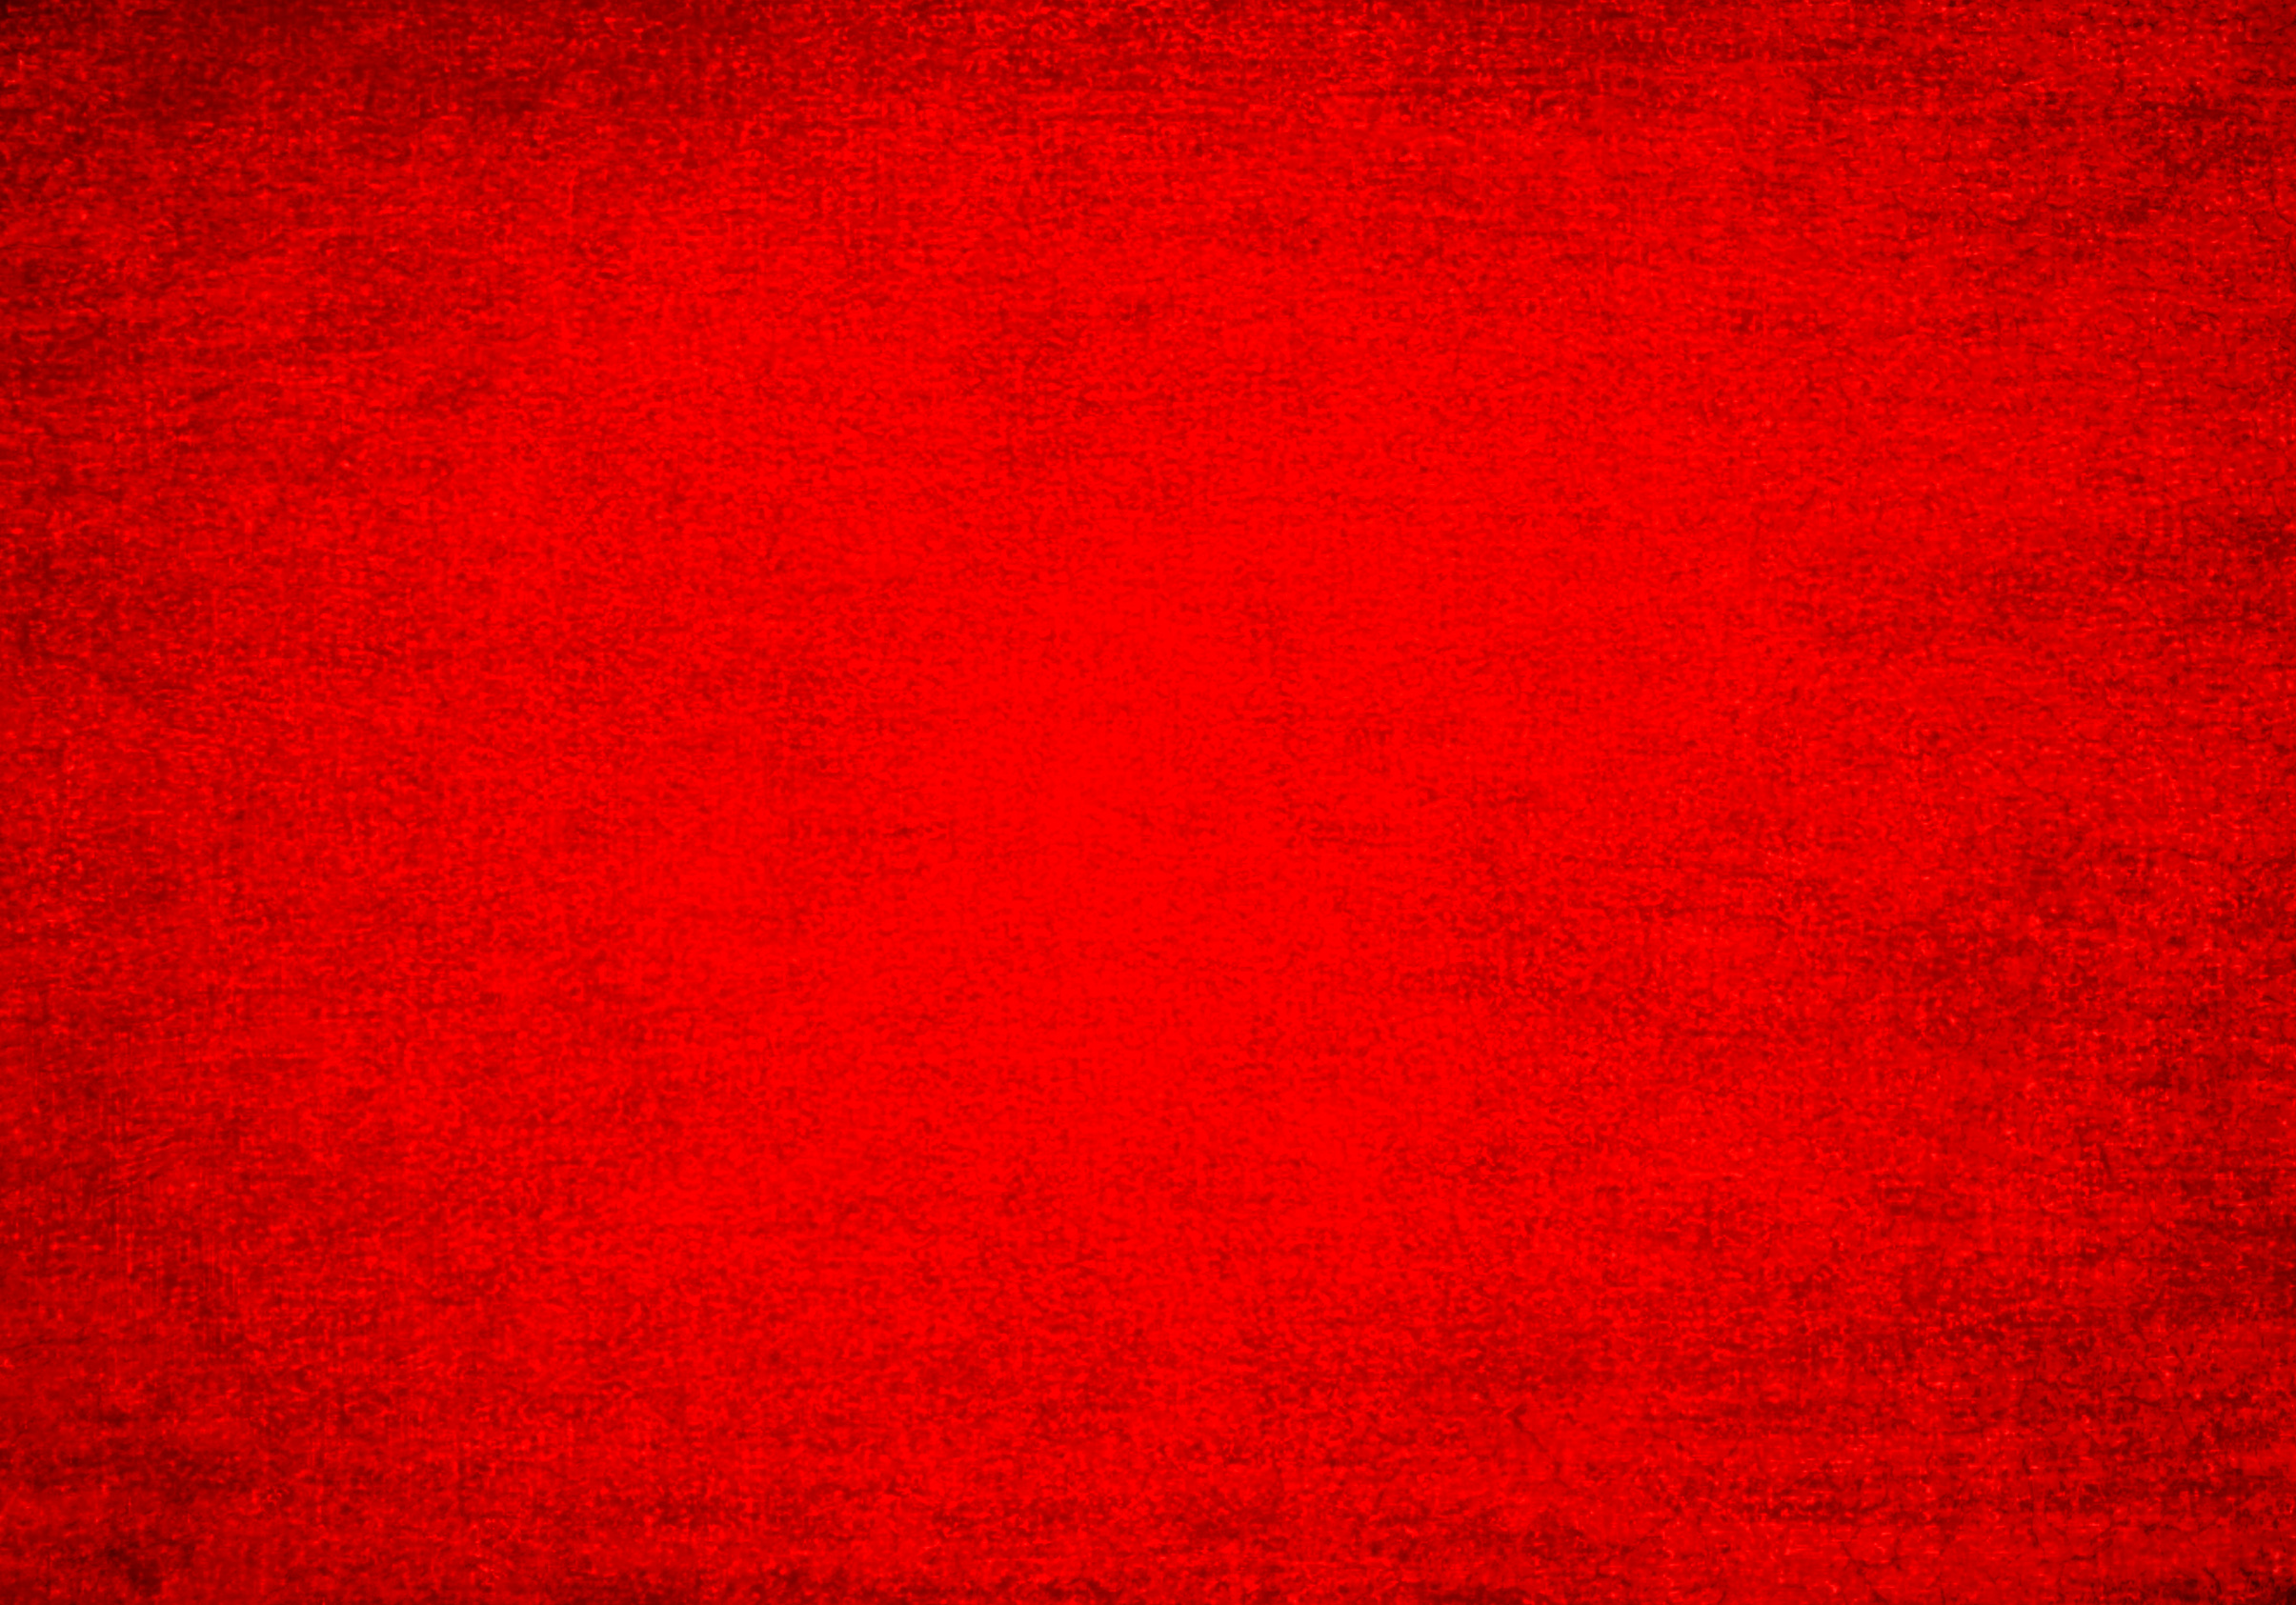 Vivid Rough Grunge Red Background, Abstract, Red, Grunge, Grungy, HQ Photo